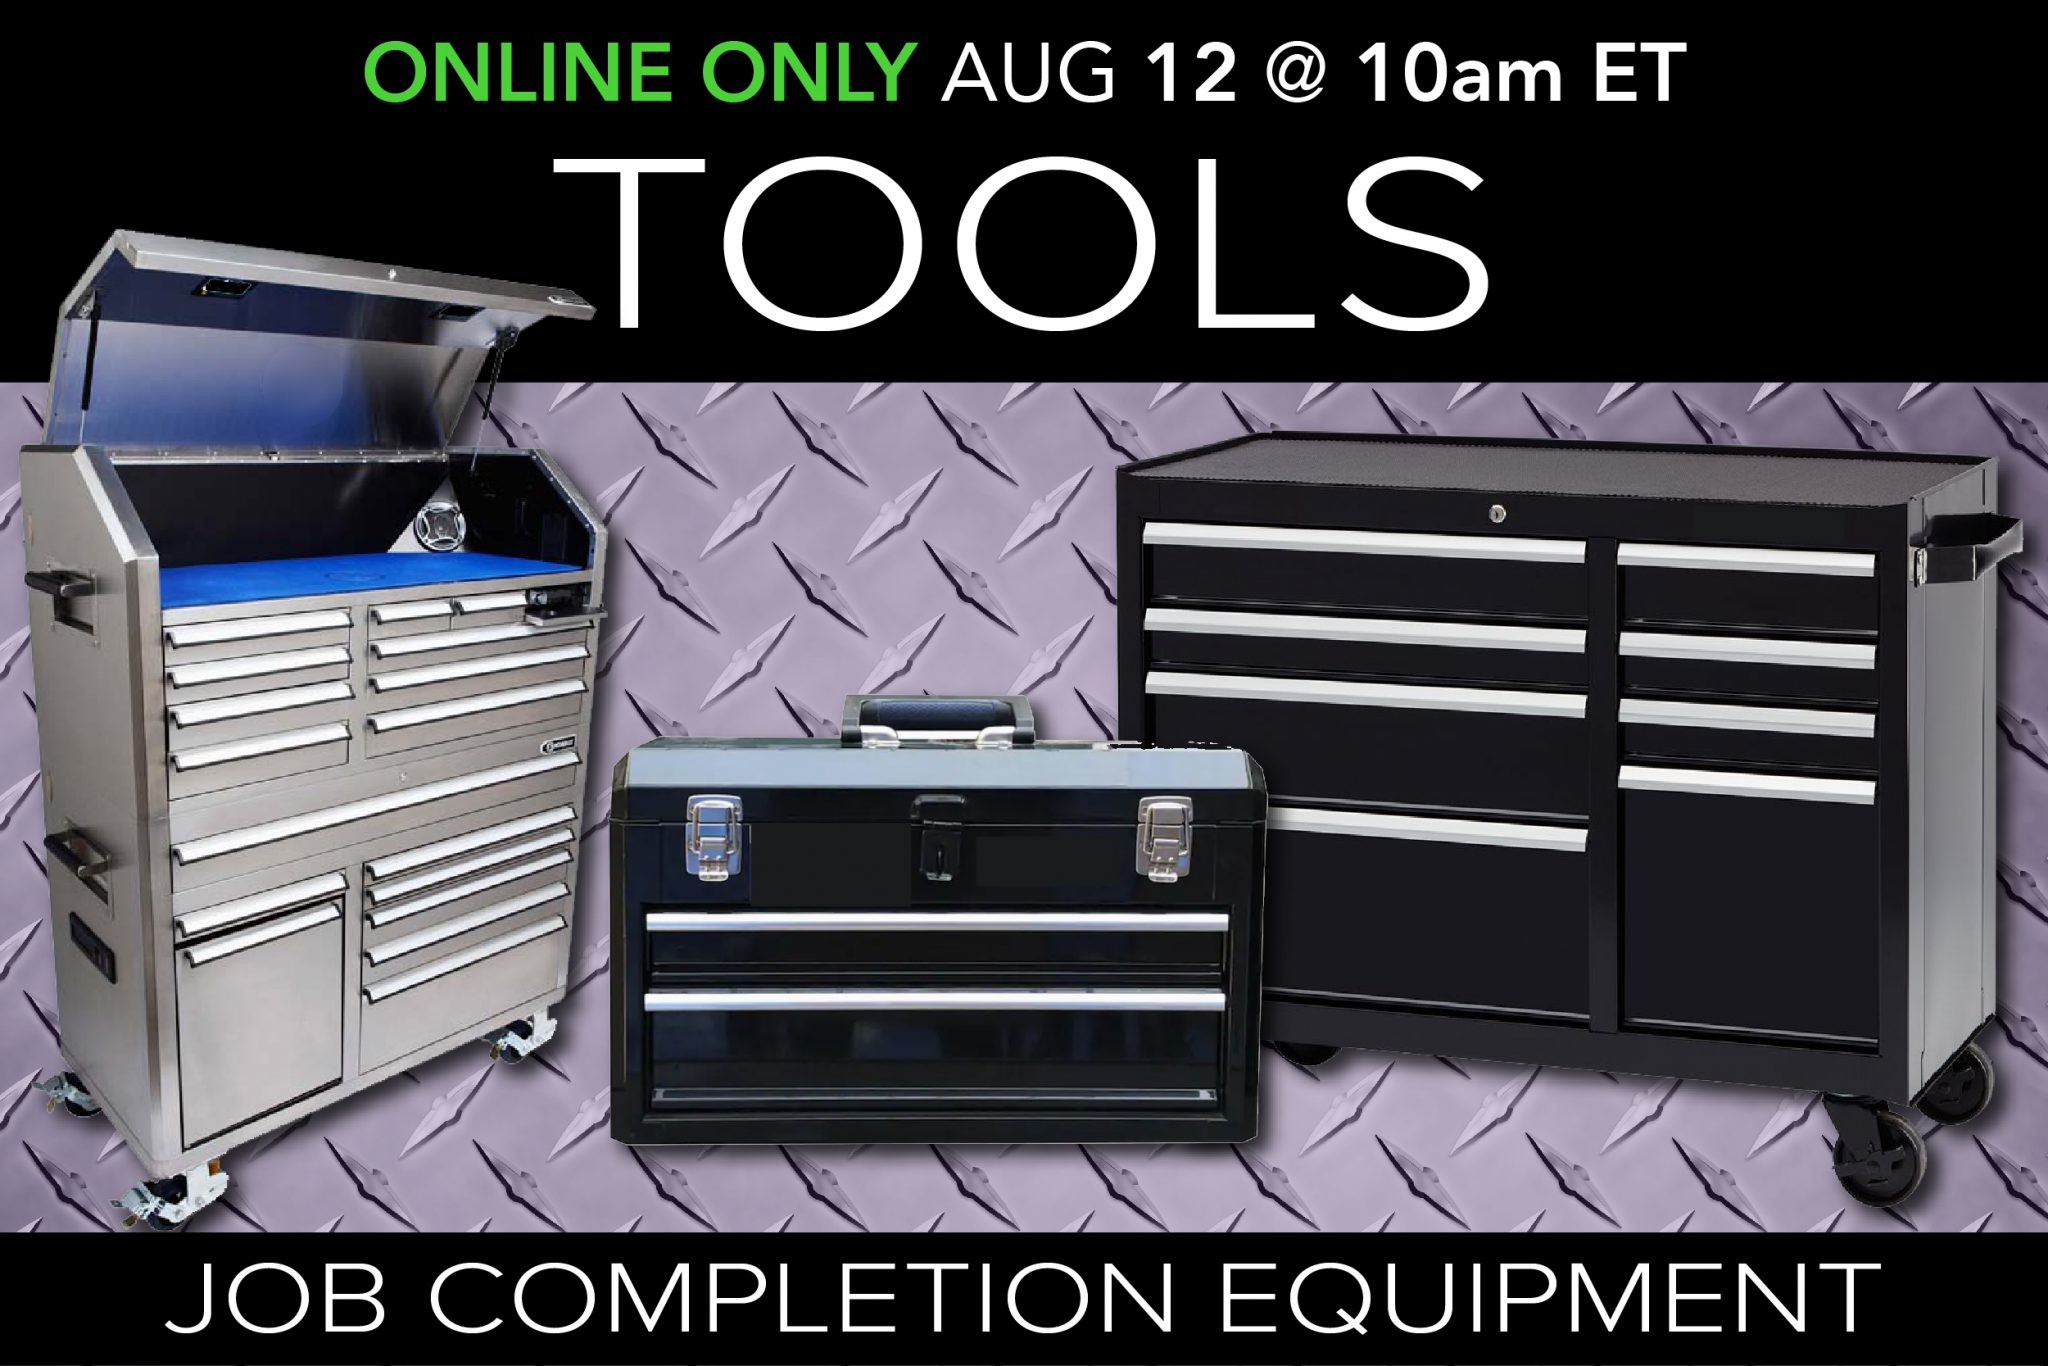 August 2020 Job completion tools equipment auction